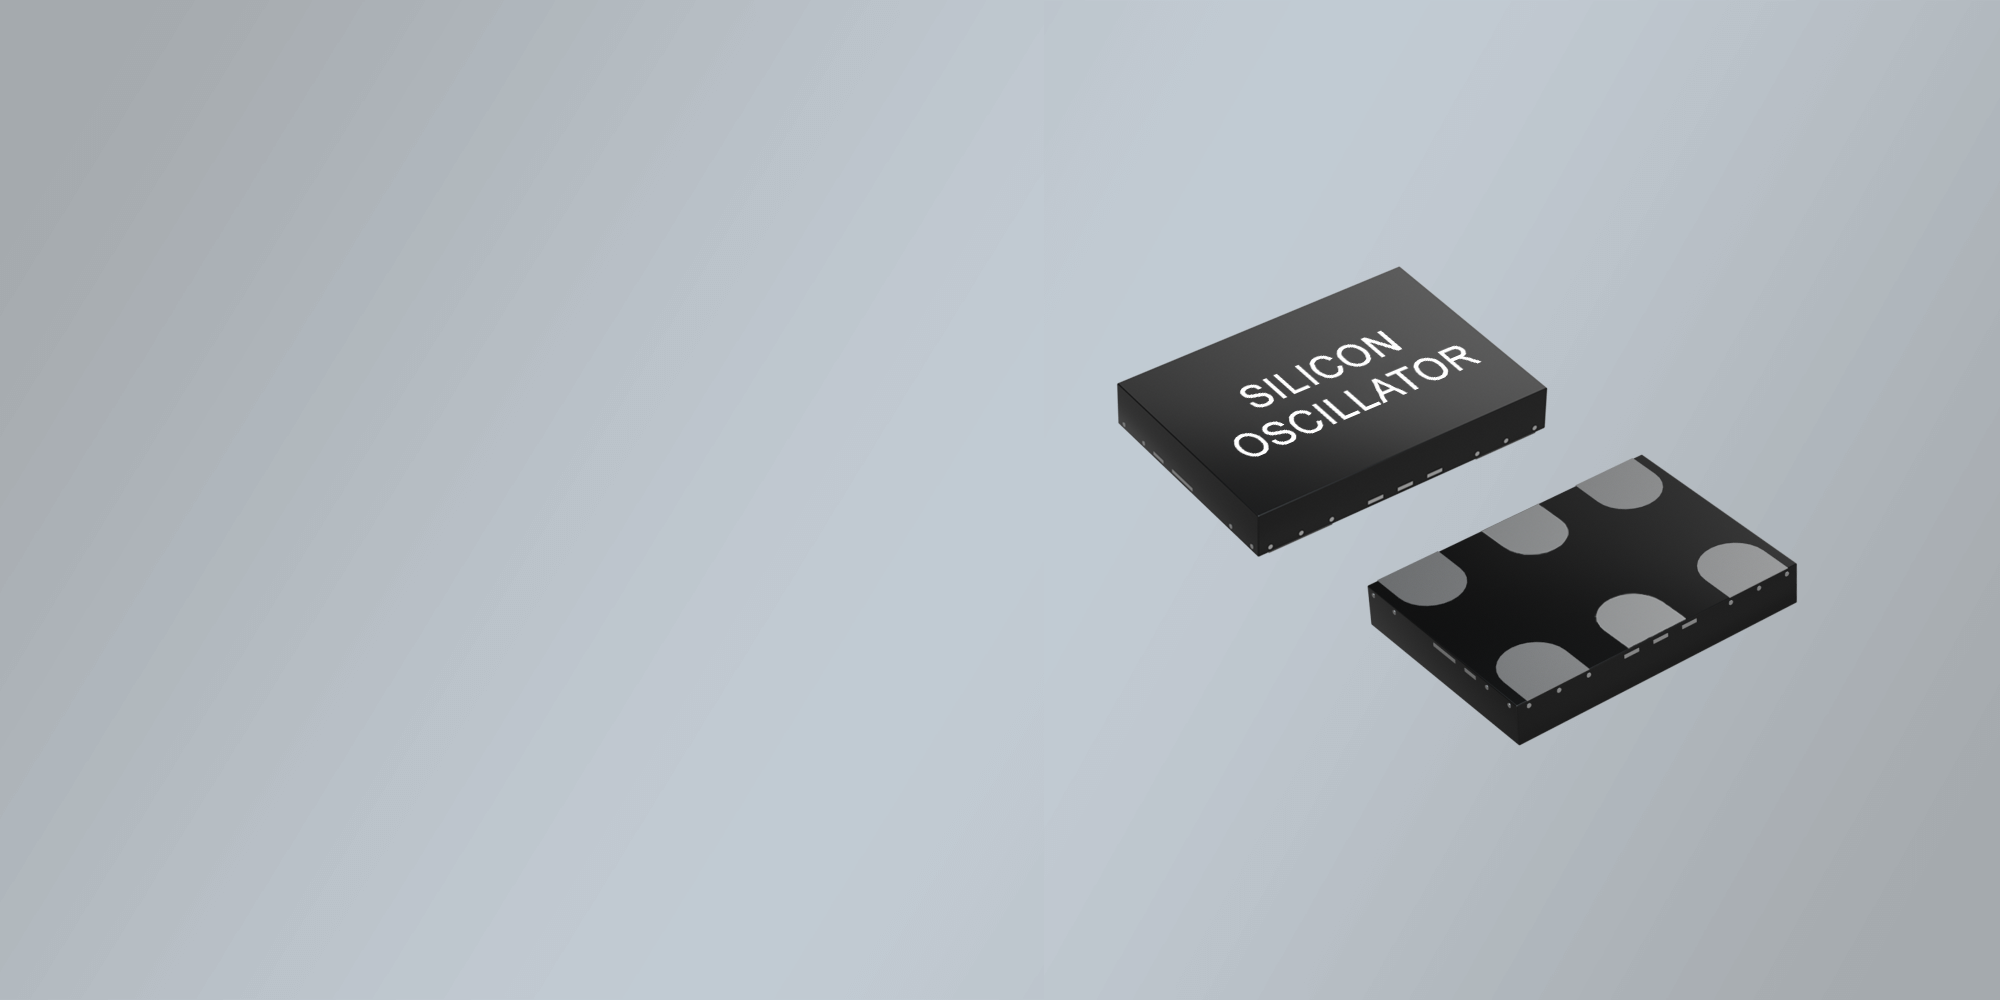 SMD DIFFERENTIAL LOW POWER TC & VCTCXO 1 - 625 MHz OSCILLATOR